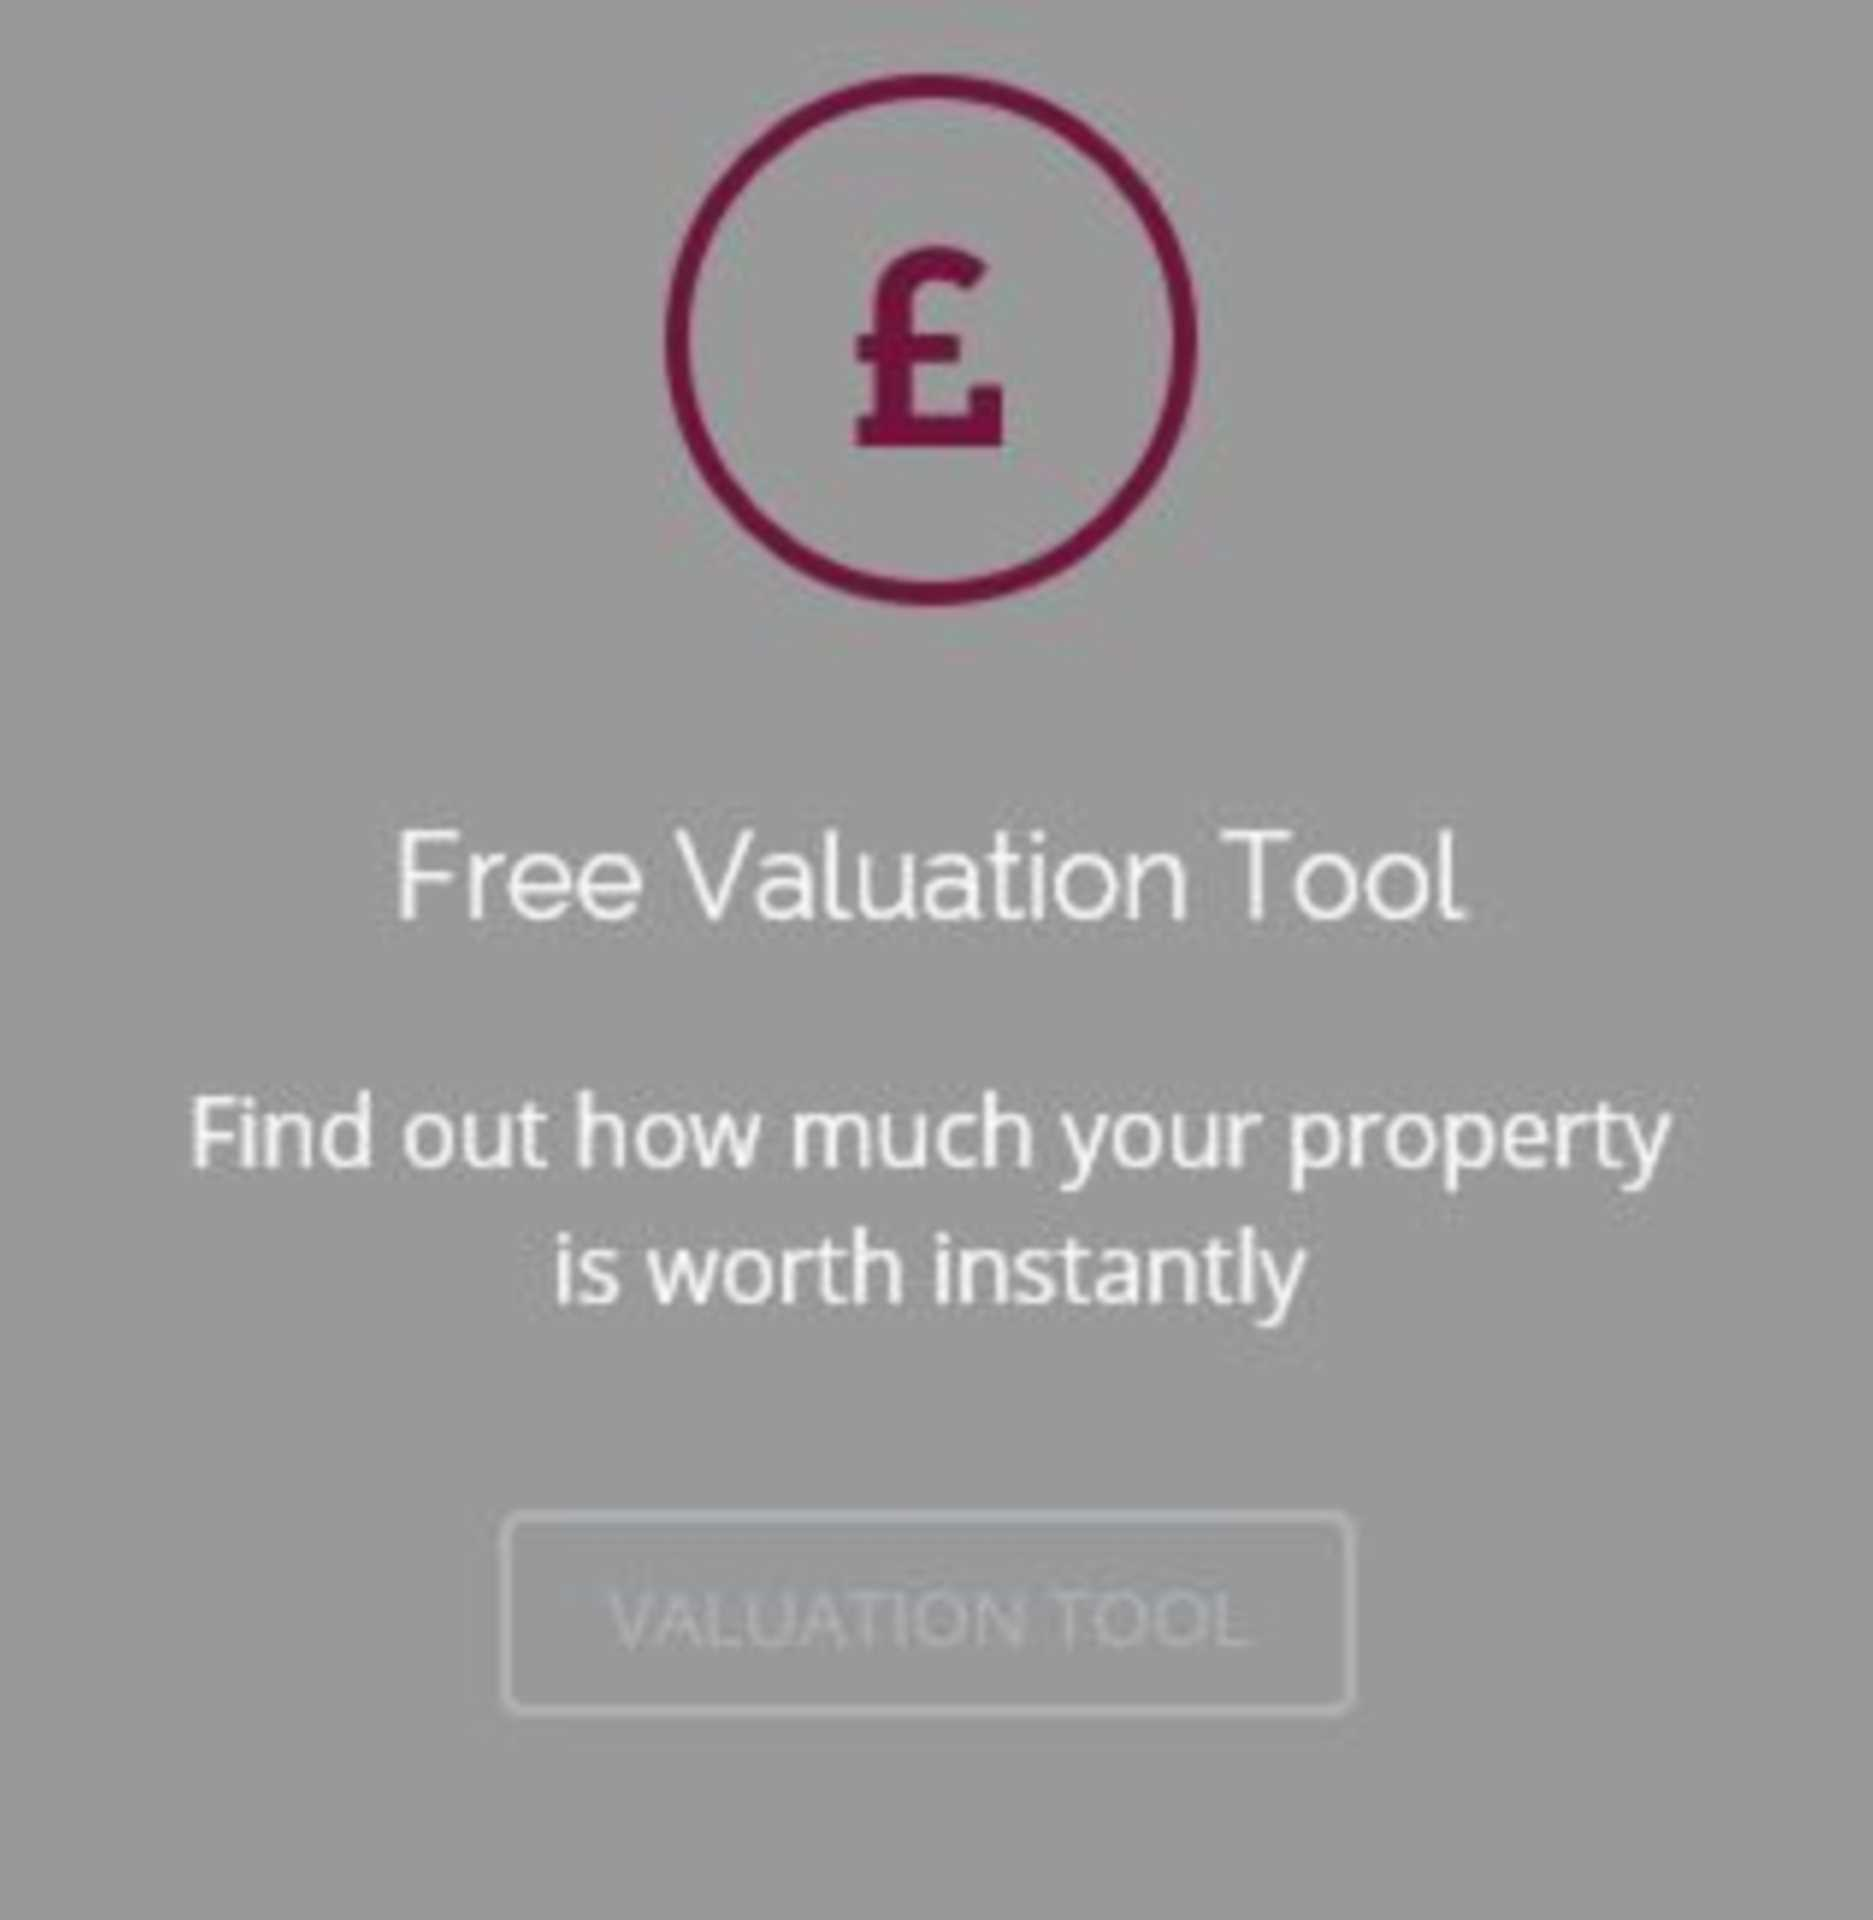 Get an online valuation of your property in seconds!